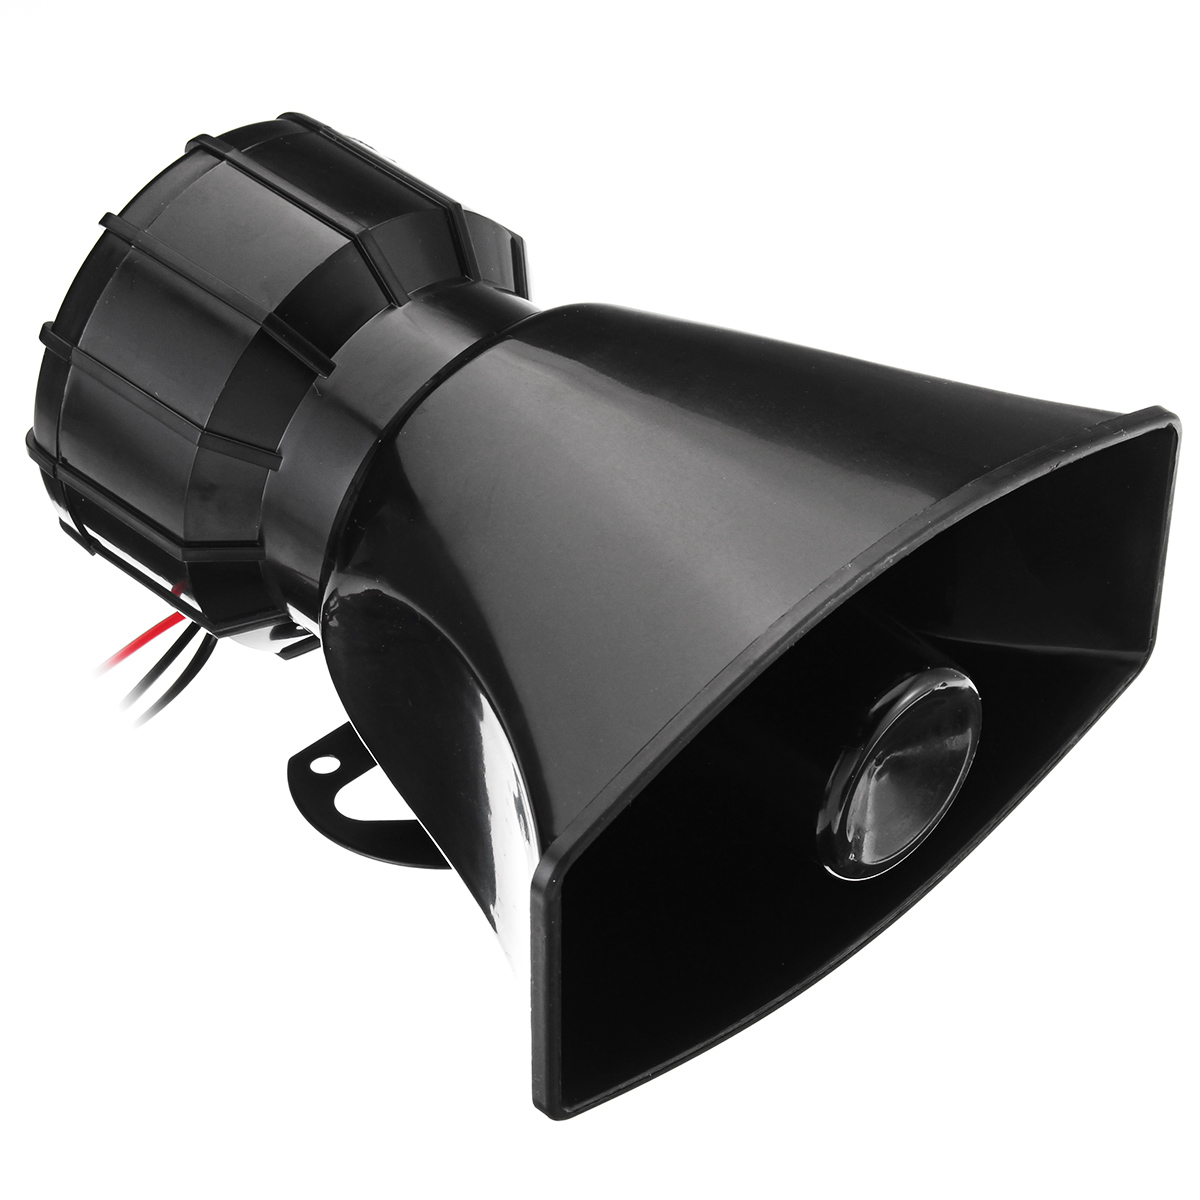 100W Car Warning Alarm 5 Sound Loudly Police Fire Siren Horn PA Speaker with Mic